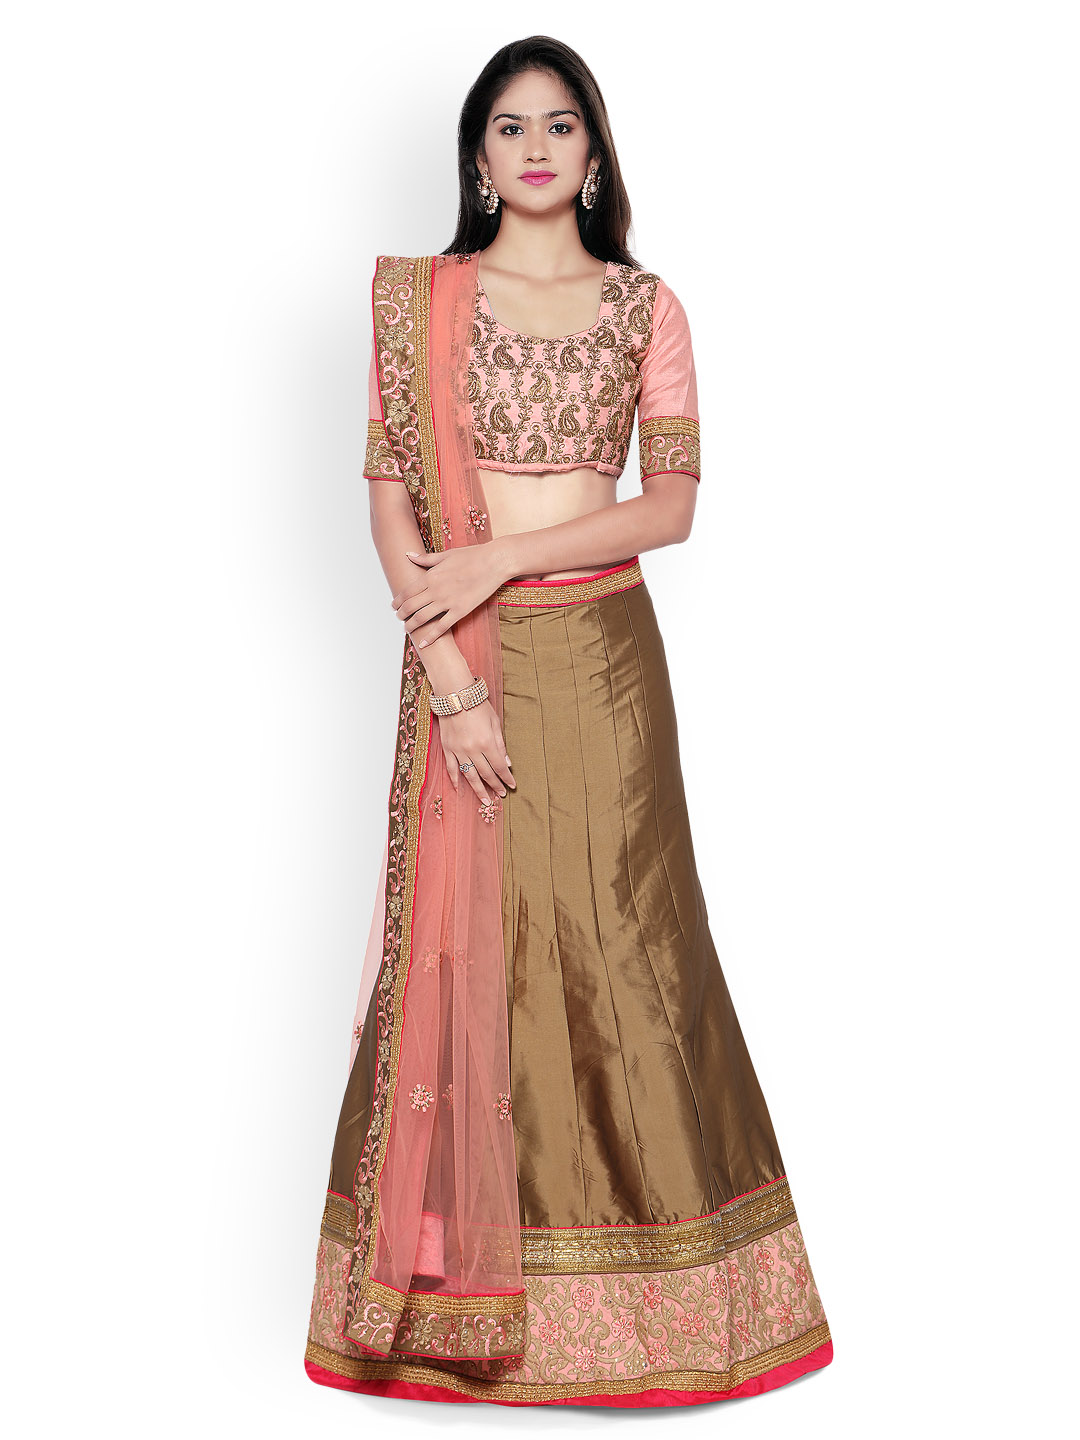 Aasvaa Brown & Peach-Coloured Embroidered Silk Semi-Stitched Lehenga Choli with Dupatta Price in India